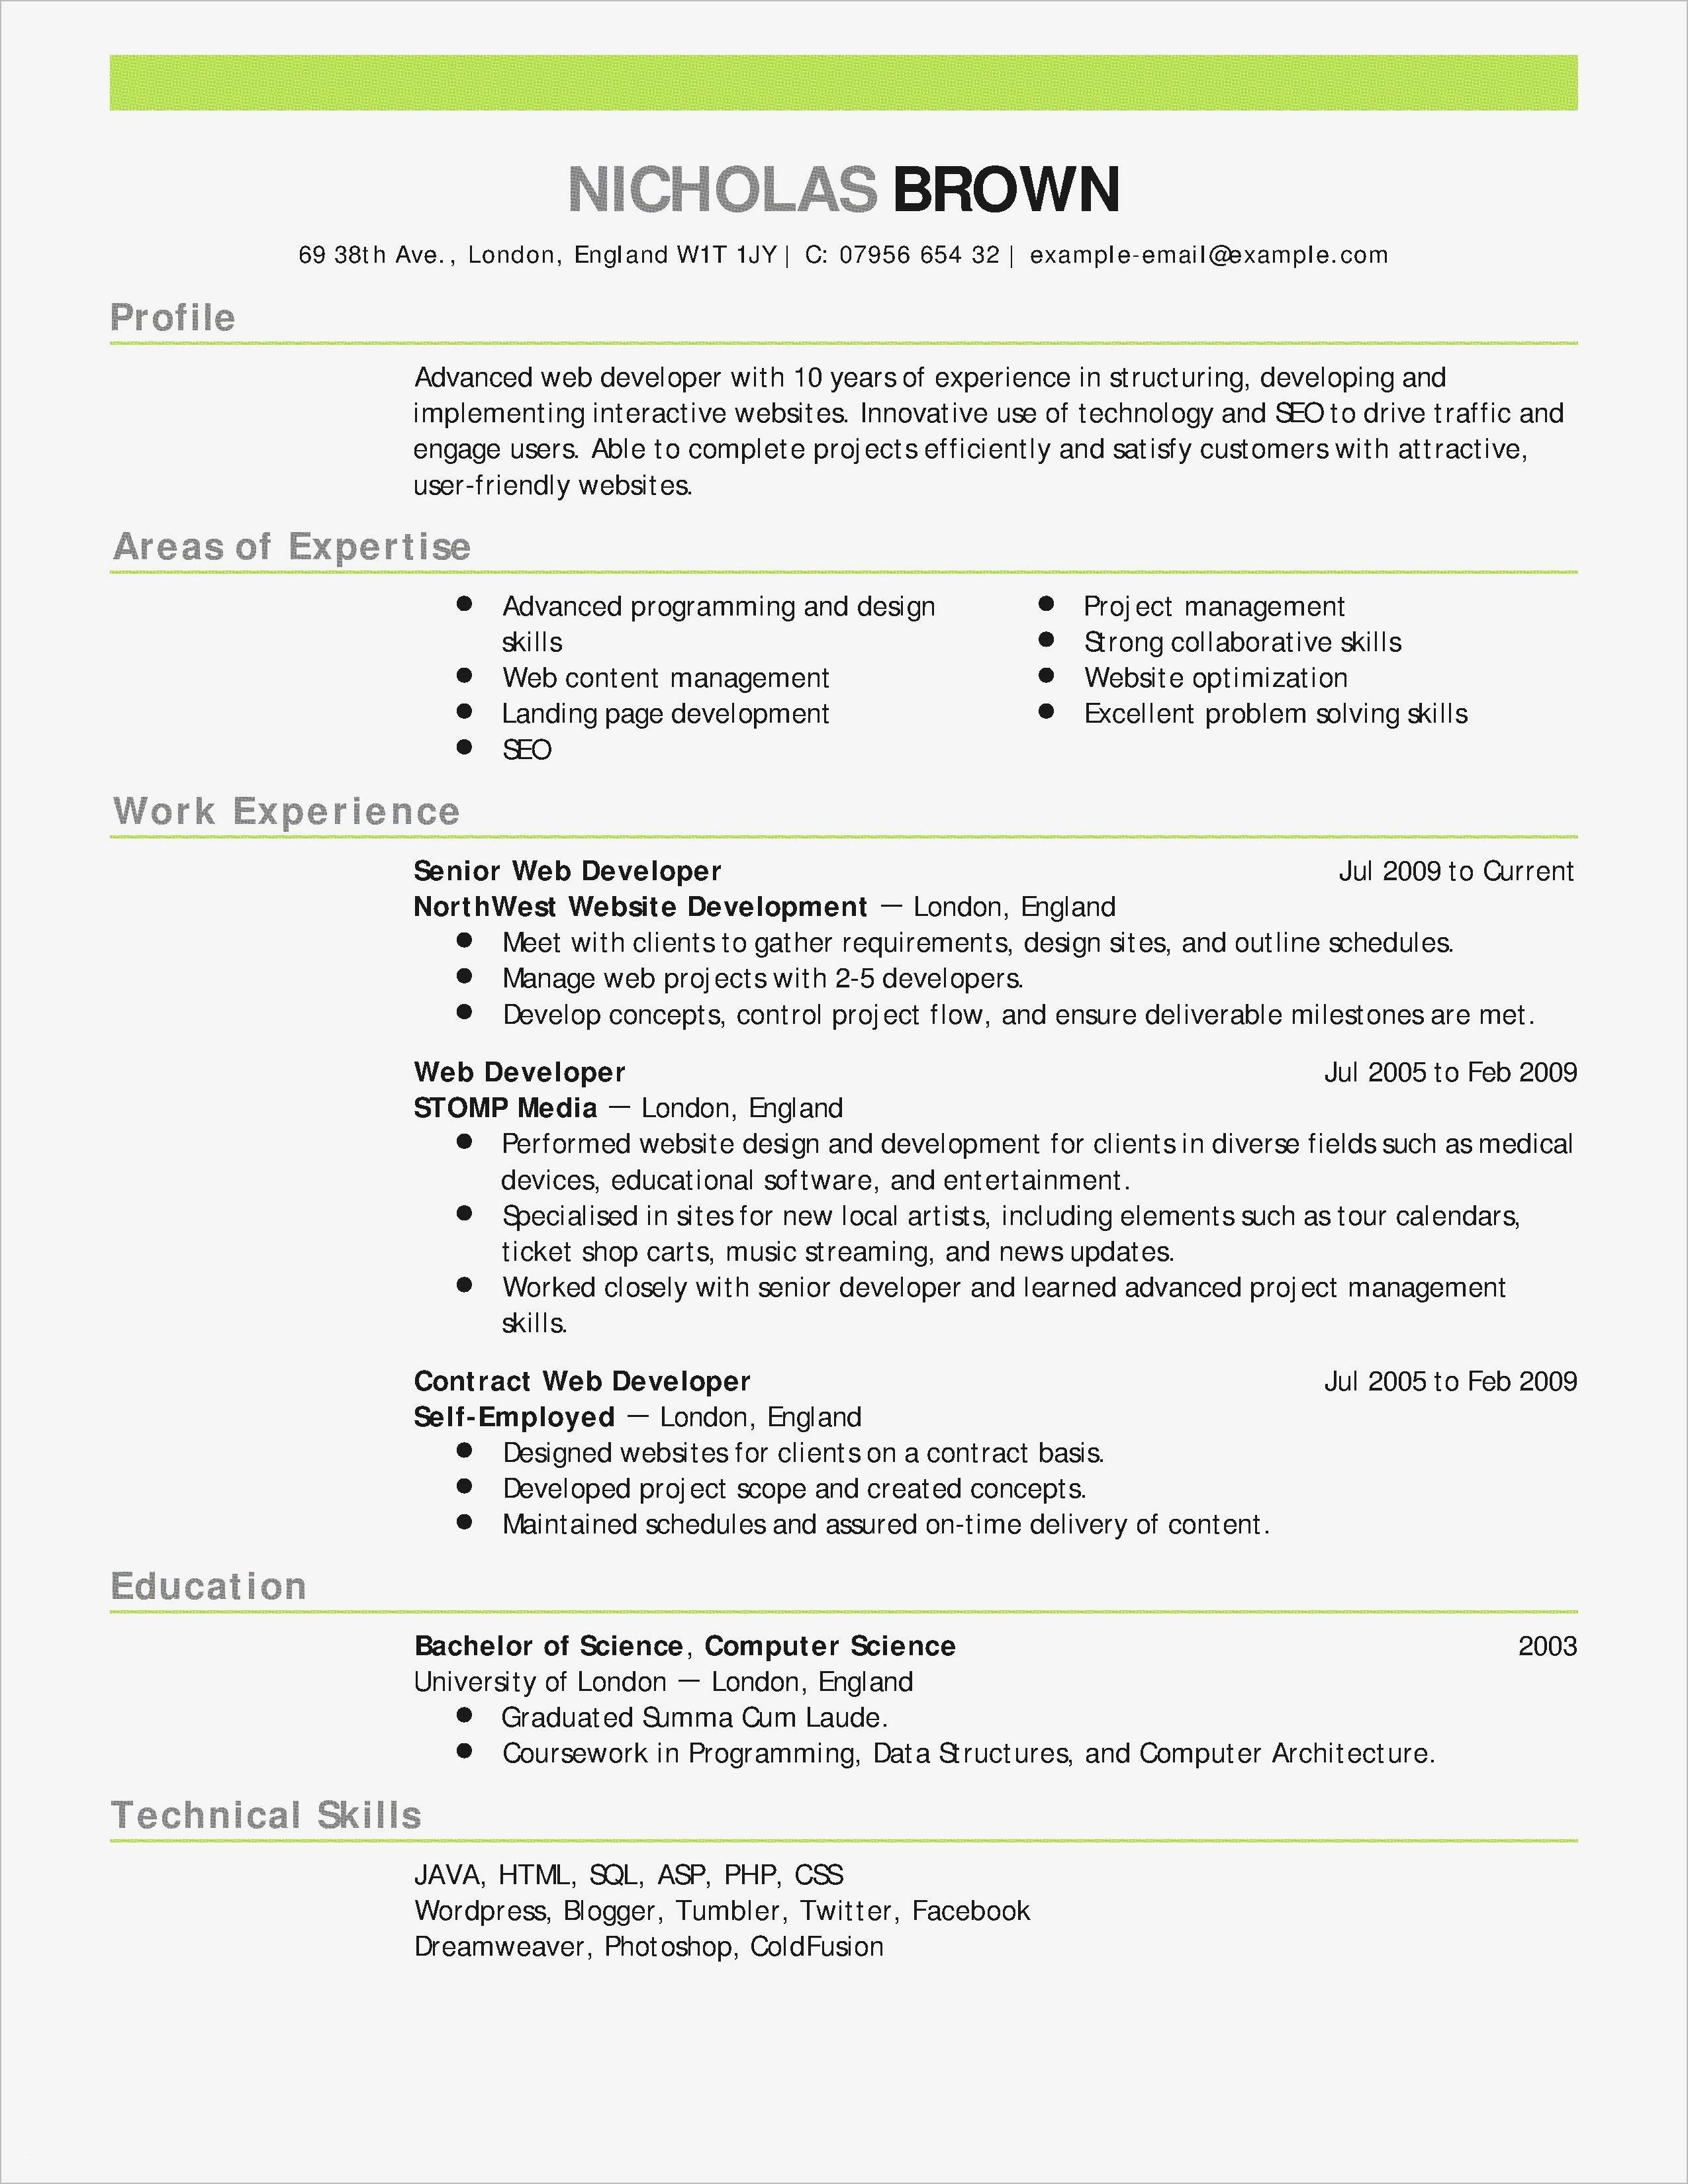 Resume Rabbit Cost - Inspirational Resume Writing Prices